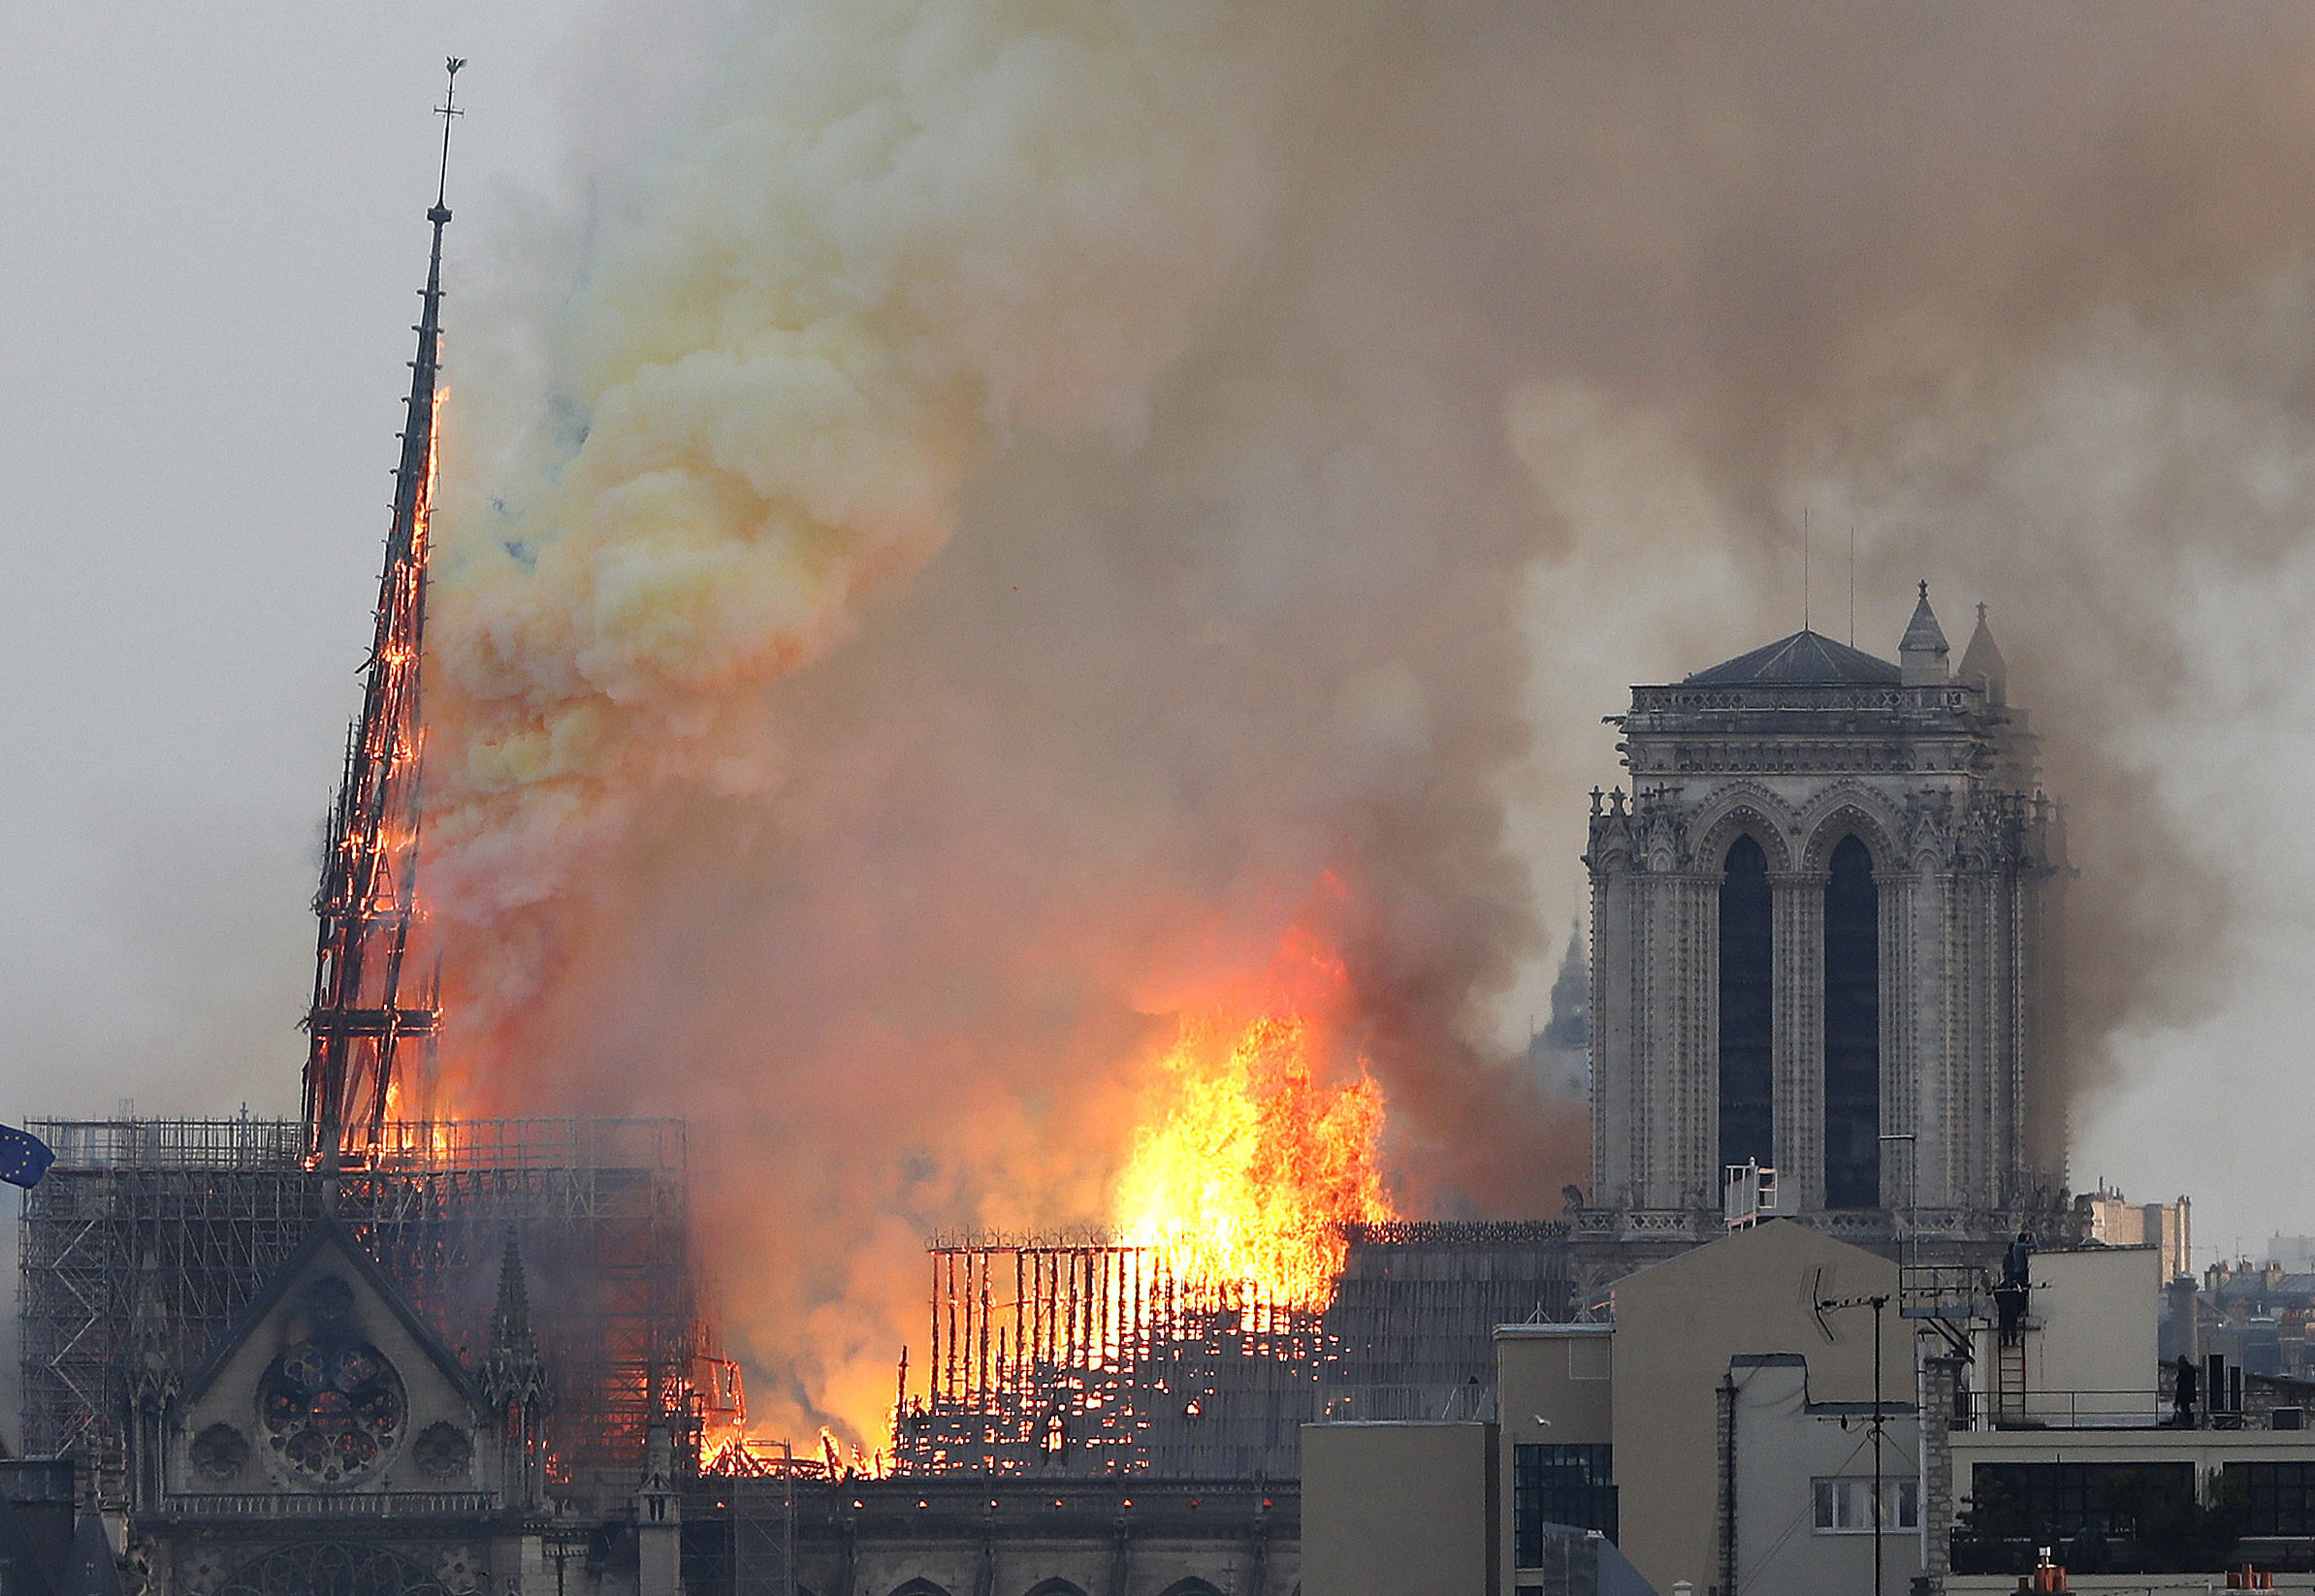 The Notre Dame blaze invites us to consider whether we'd want Edinburgh Castle rebuilt – and at what cost? – if it was struck by a devastating fire.